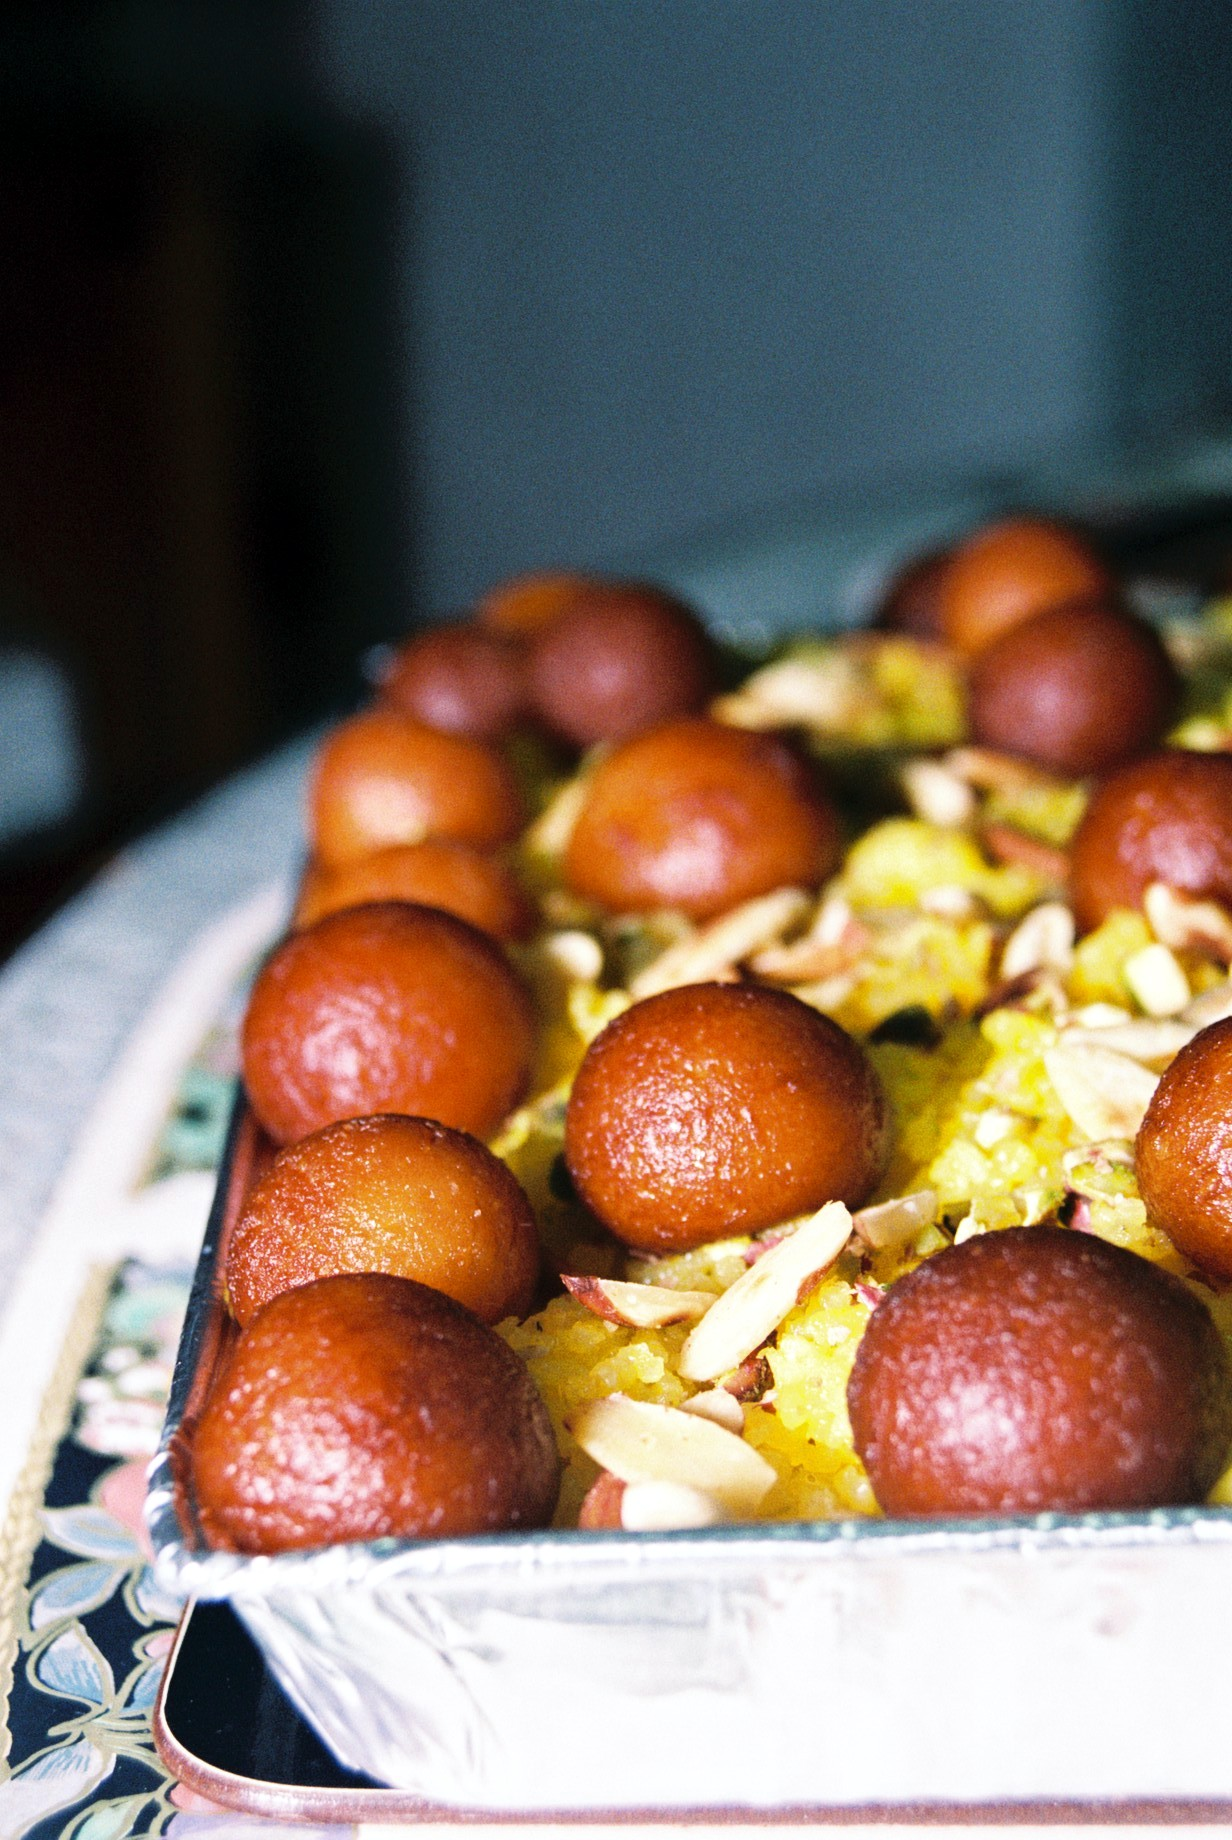 Gulab Jamun are fried dough drizzled with syrup in India and one of the Diwali festival foods you must try. Discover the other 22 foods.